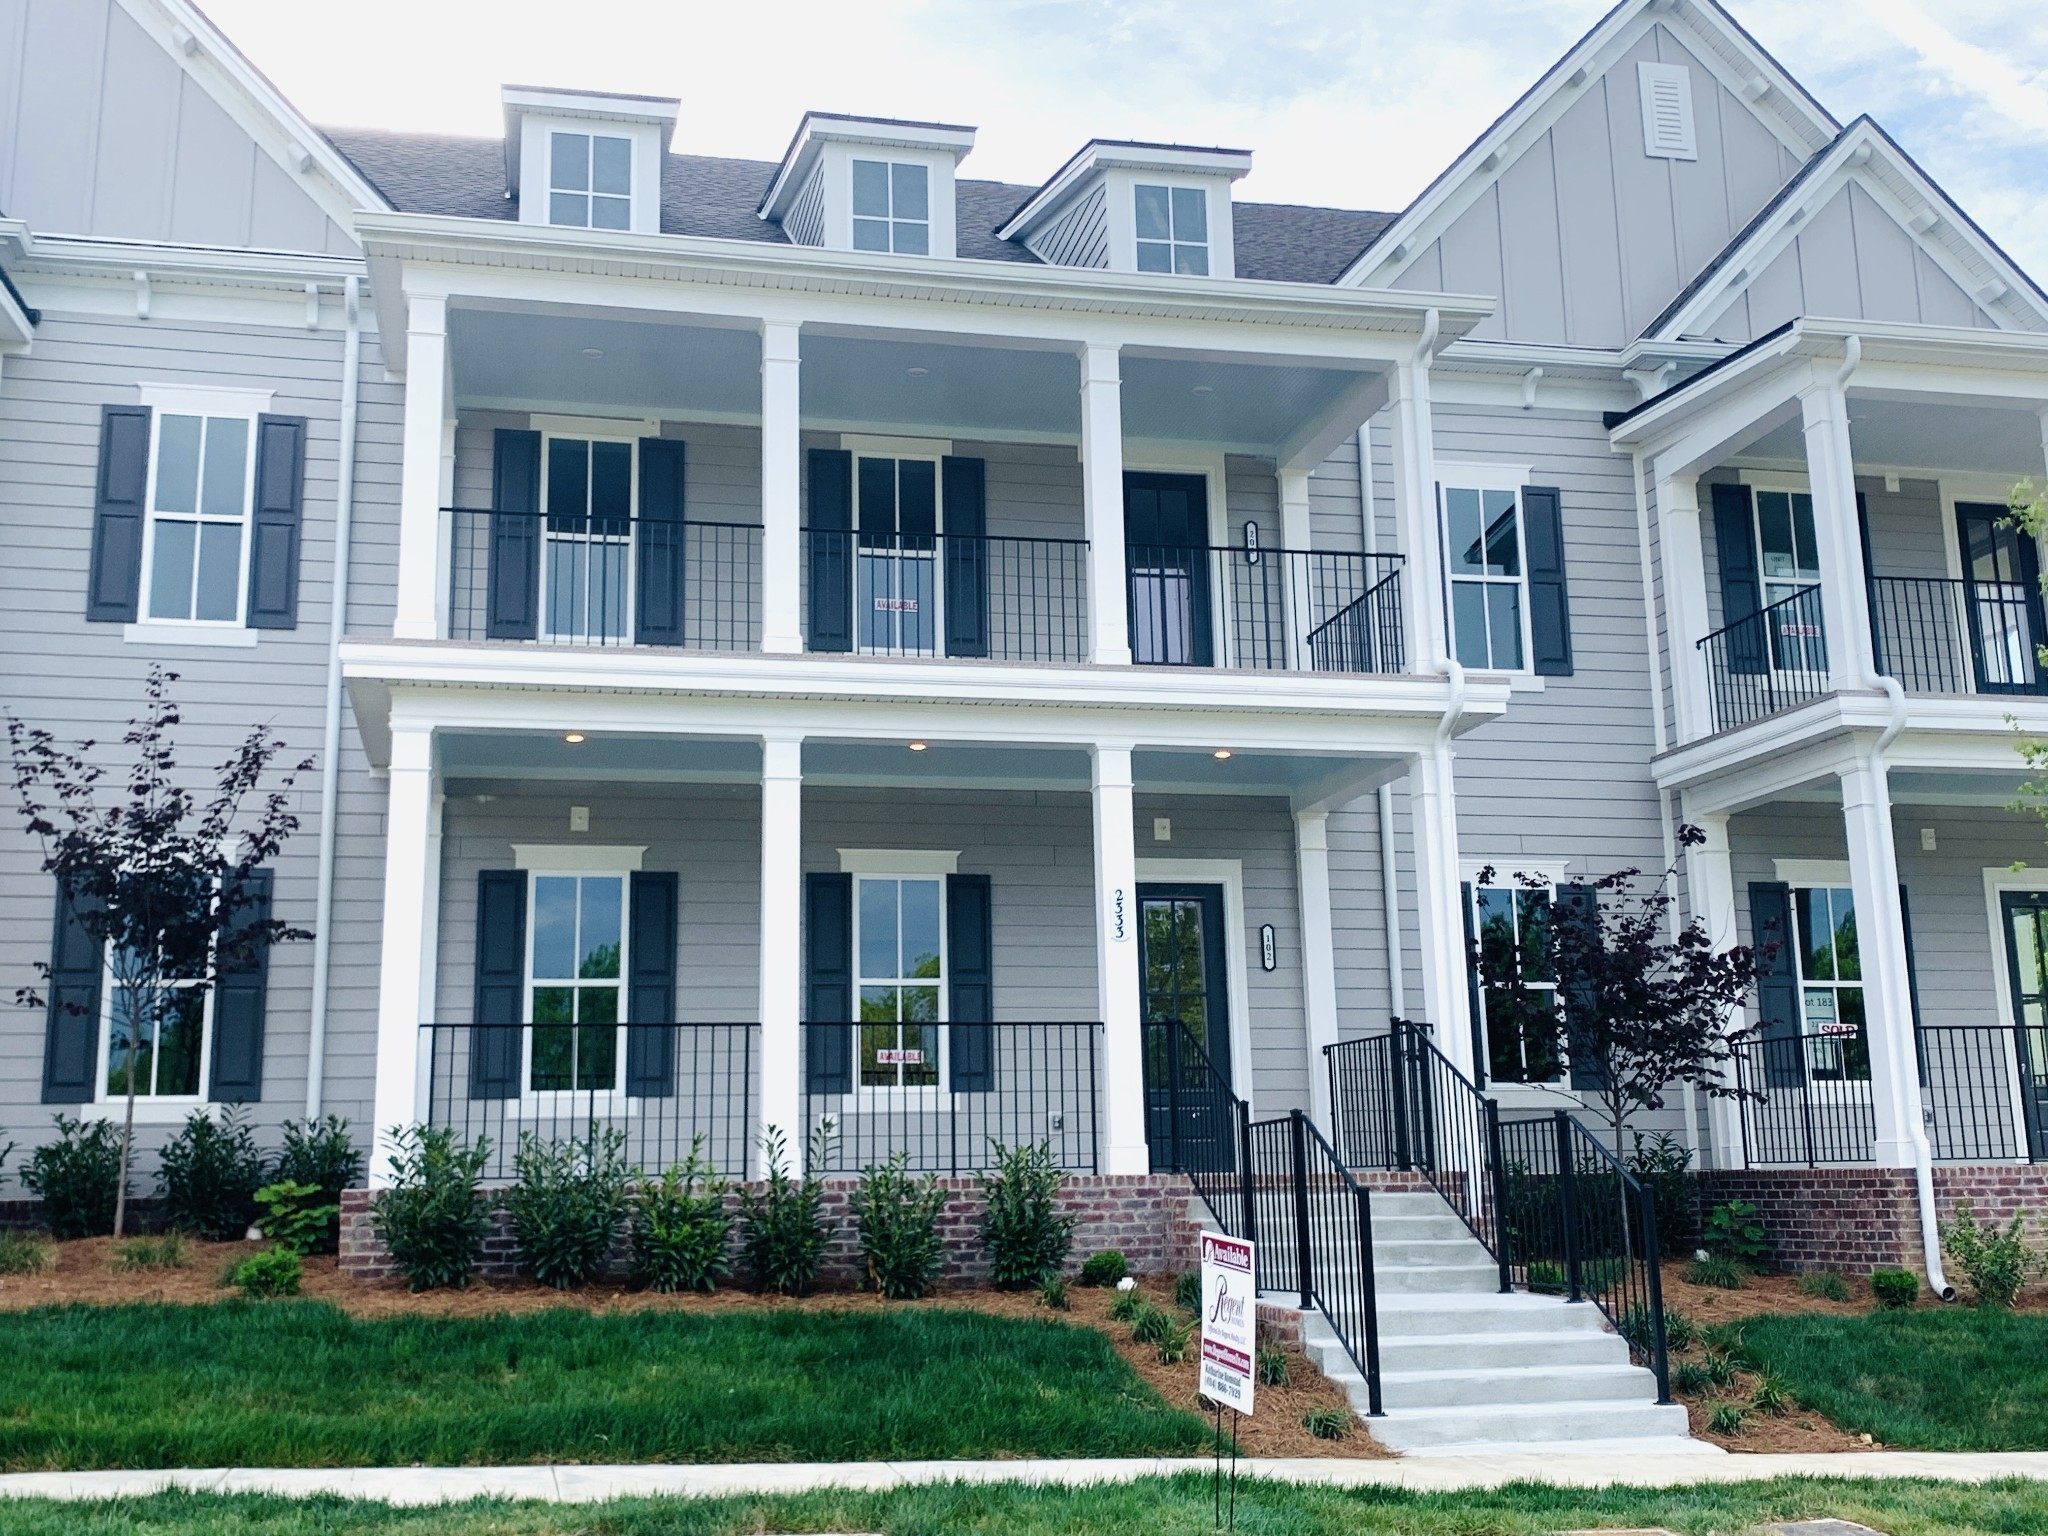 This CONDO building is currently under construction, going into sheetrock, two bedroom, 2 bath, roommate plan, open concept living, large  porch, gourmet kitchen with island, Selections can still be made. Parking available for residence. End unit First Floor